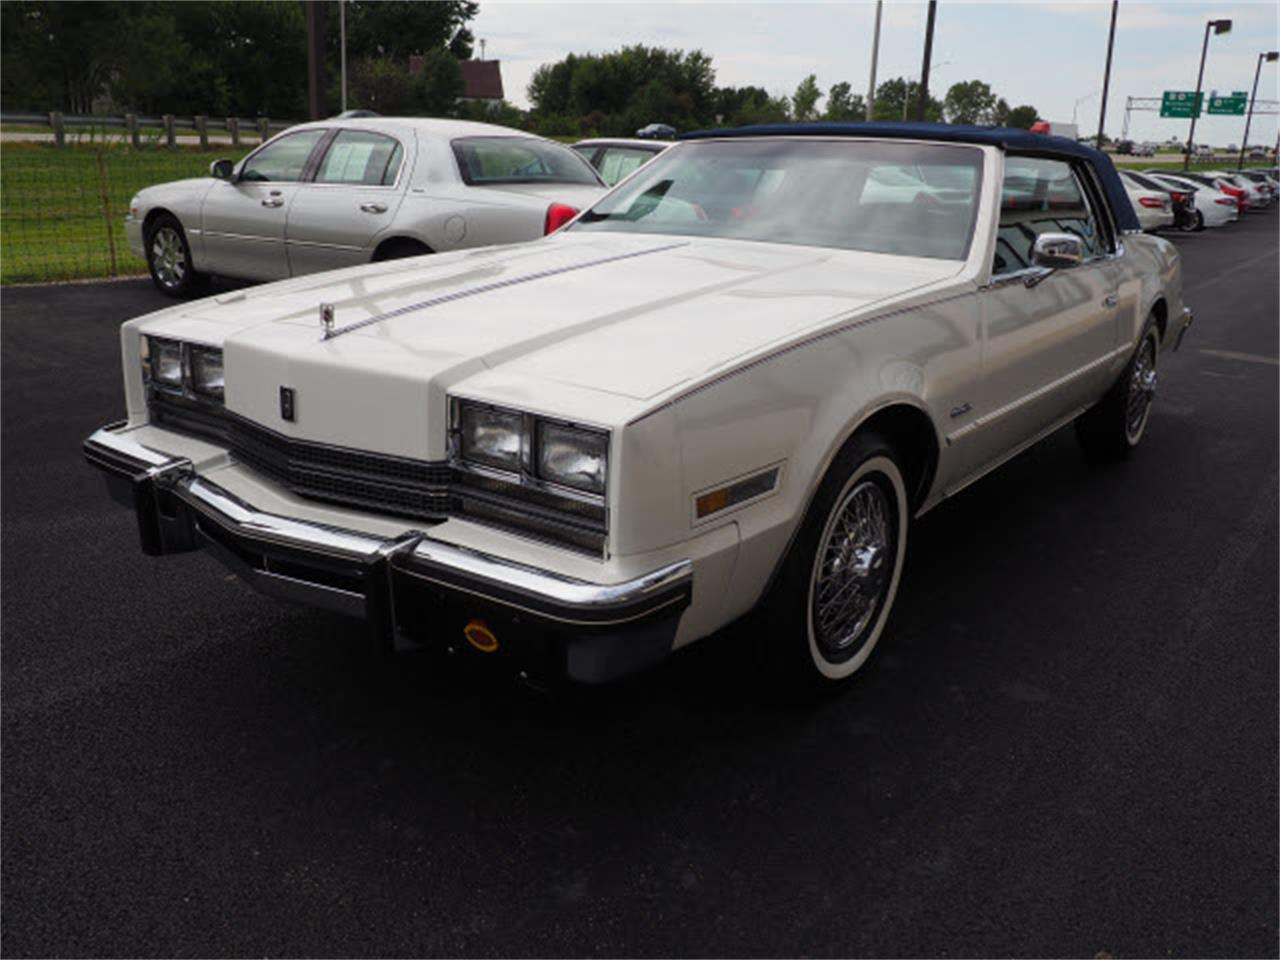 Large Picture of 1985 Toronado located in Ohio - $14,999.00 - LUQO